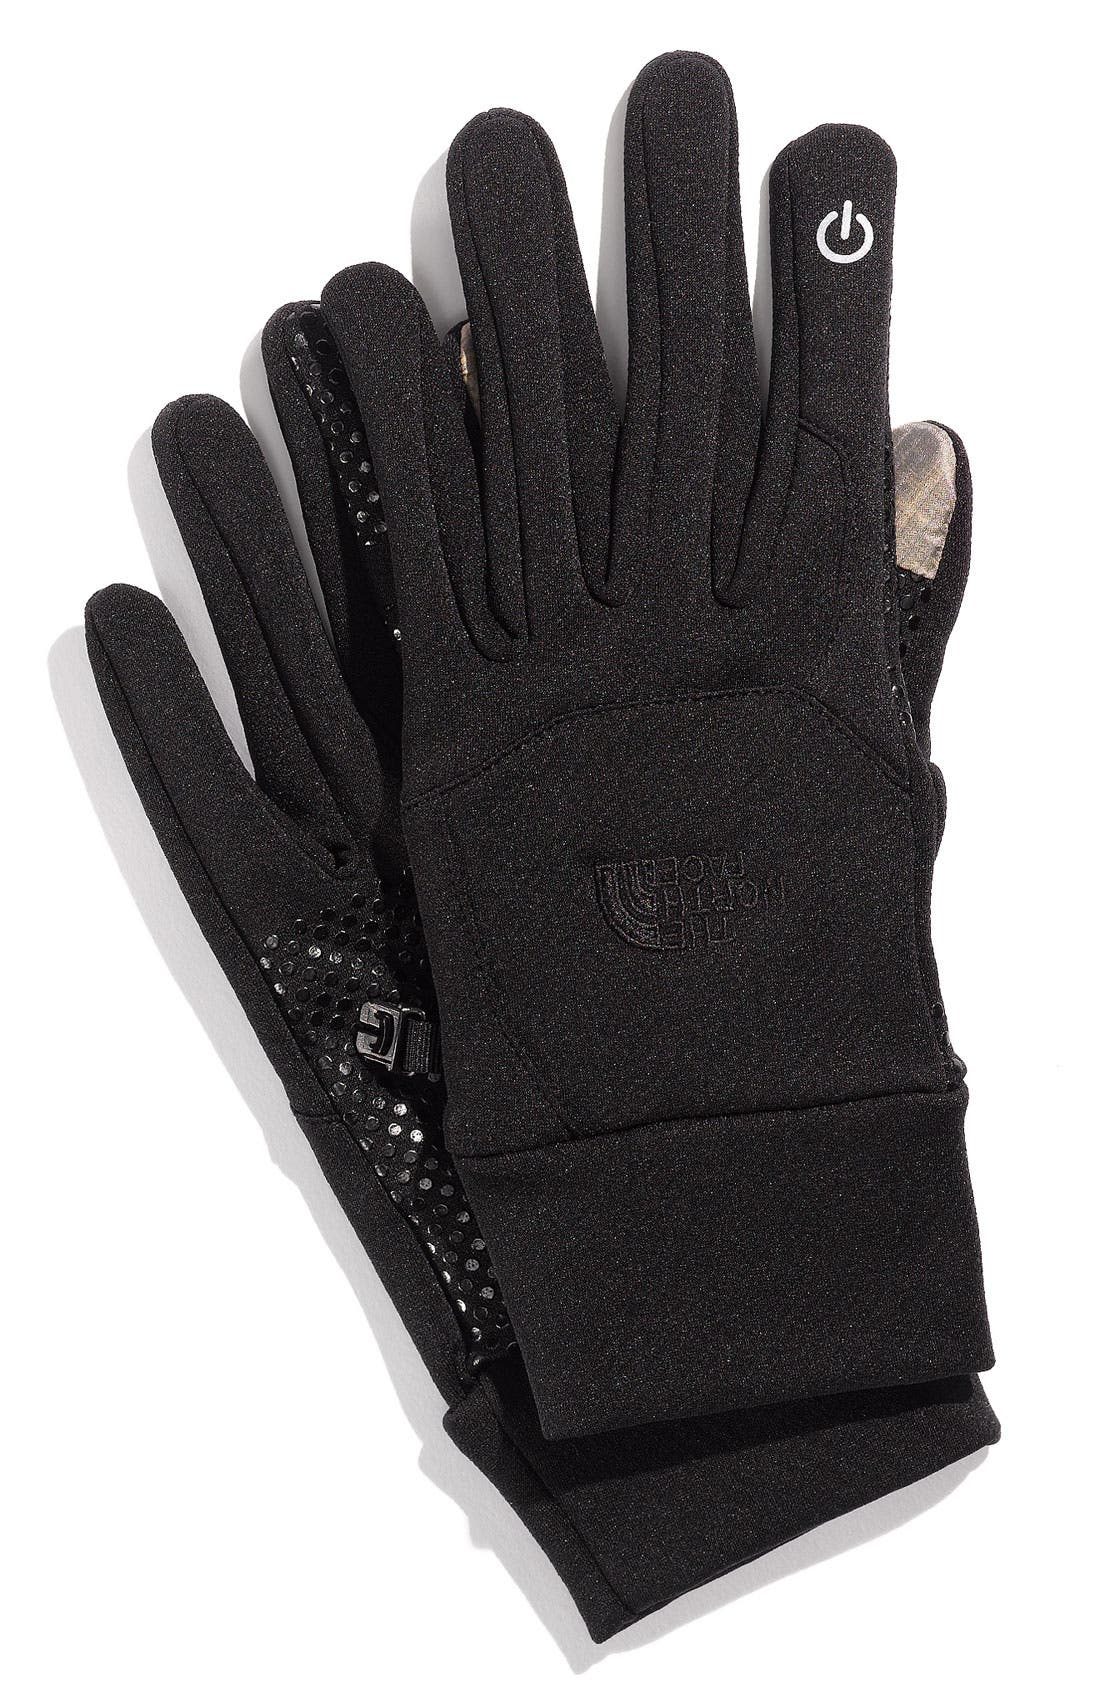 Alternate Image 1 Selected - The North Face 'E-Tip' Gloves (Men)